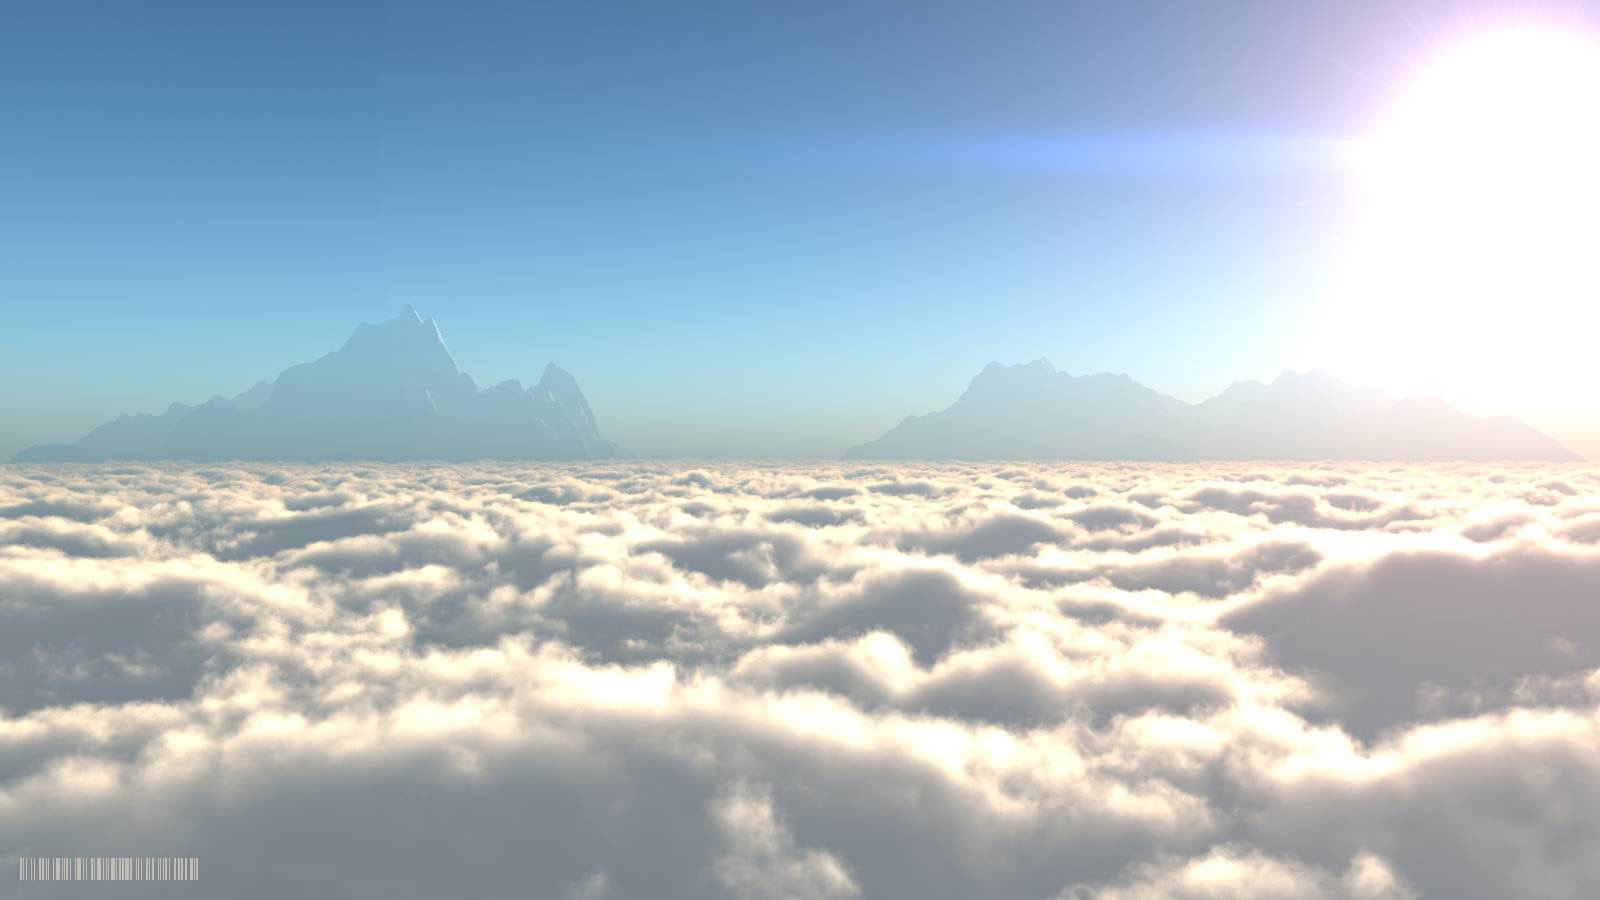 Above the Clouds by bluesixtynine Above the Clouds by bluesixtynine